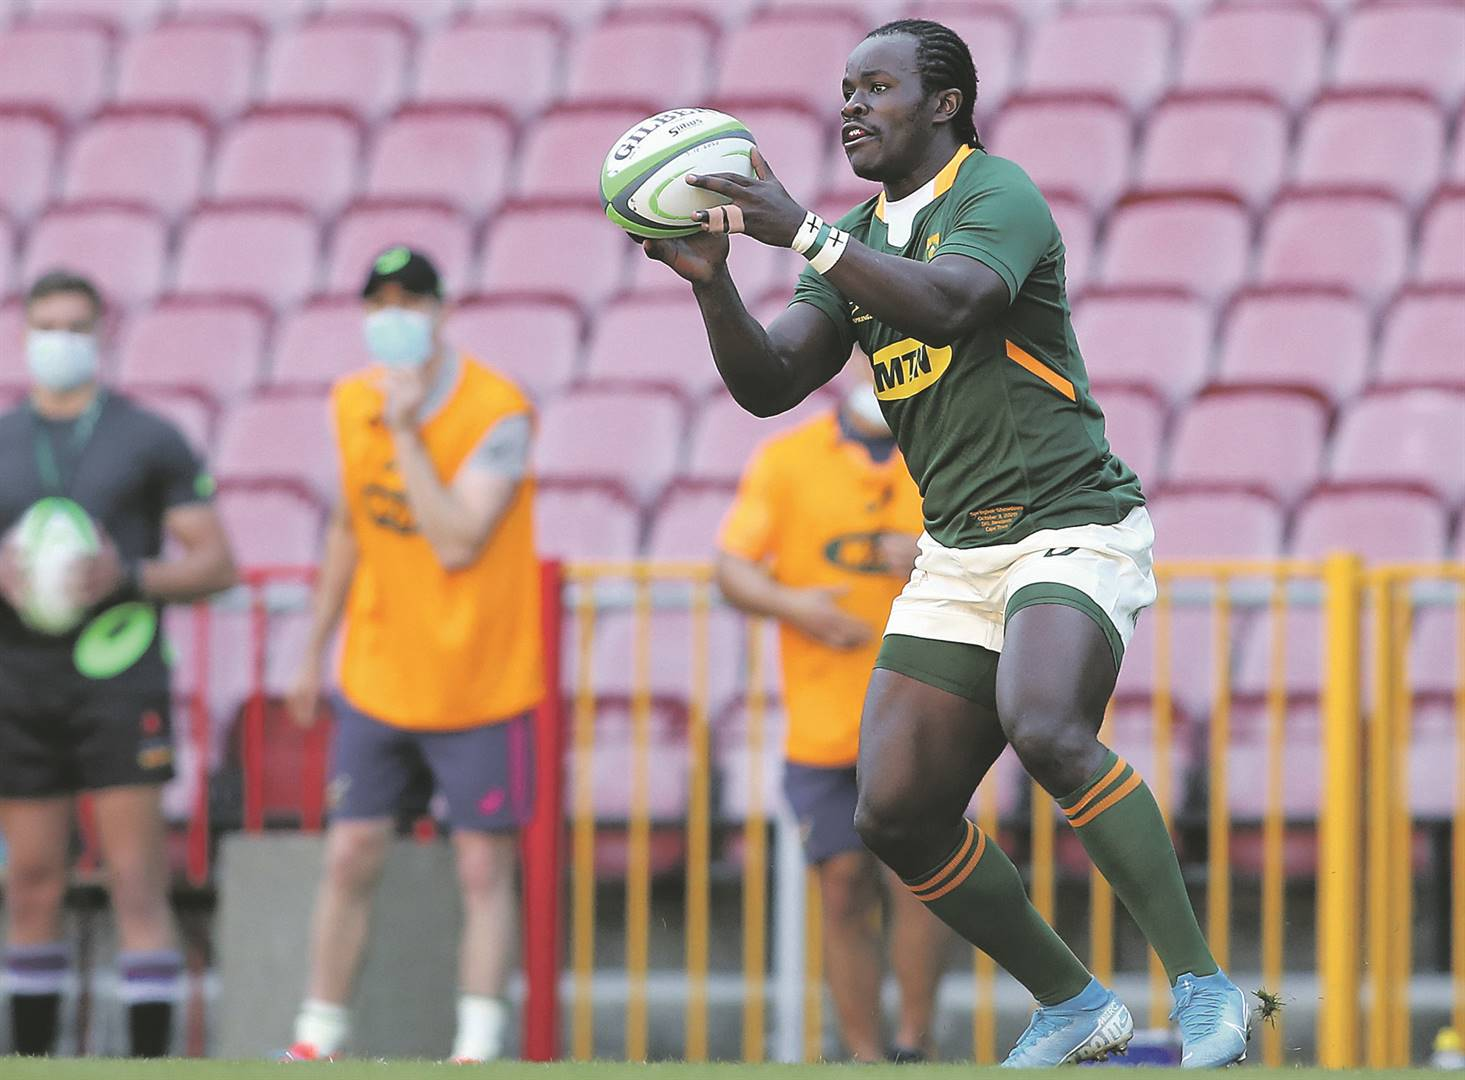 Yaw Penxe's great performance for the Springbok Green during the Castle Lager Springbok Showdown match against the Springbok Gold earned him a contract at the Sharks. Picture: Shaun Roy / Gallo Images